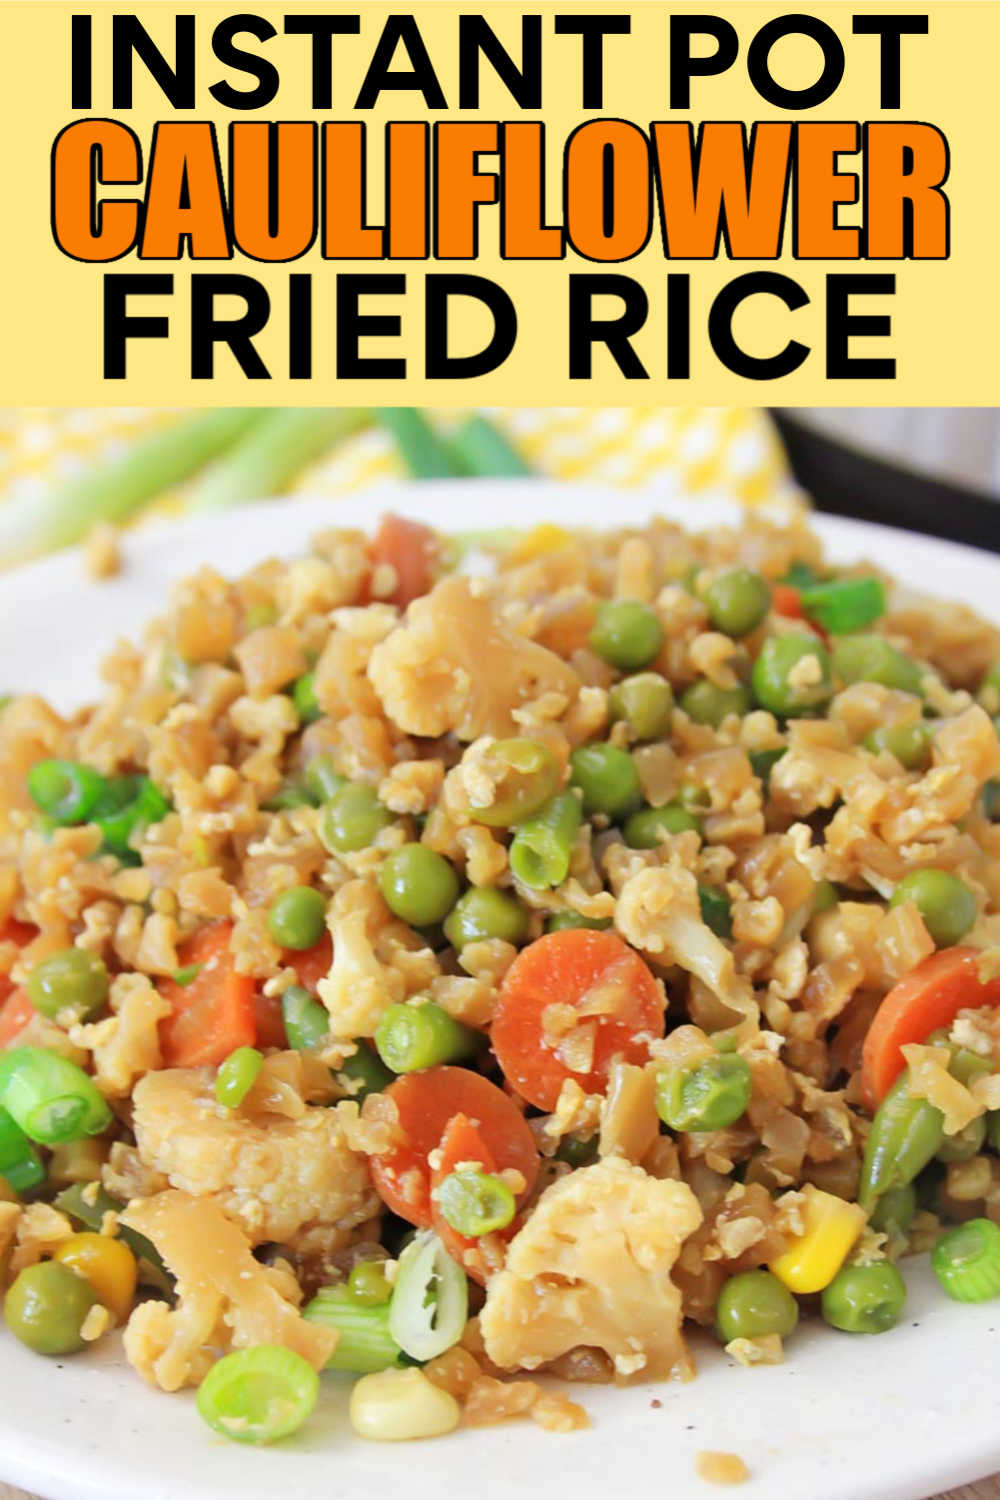 Instant Pot Cauliflower Fried Rice